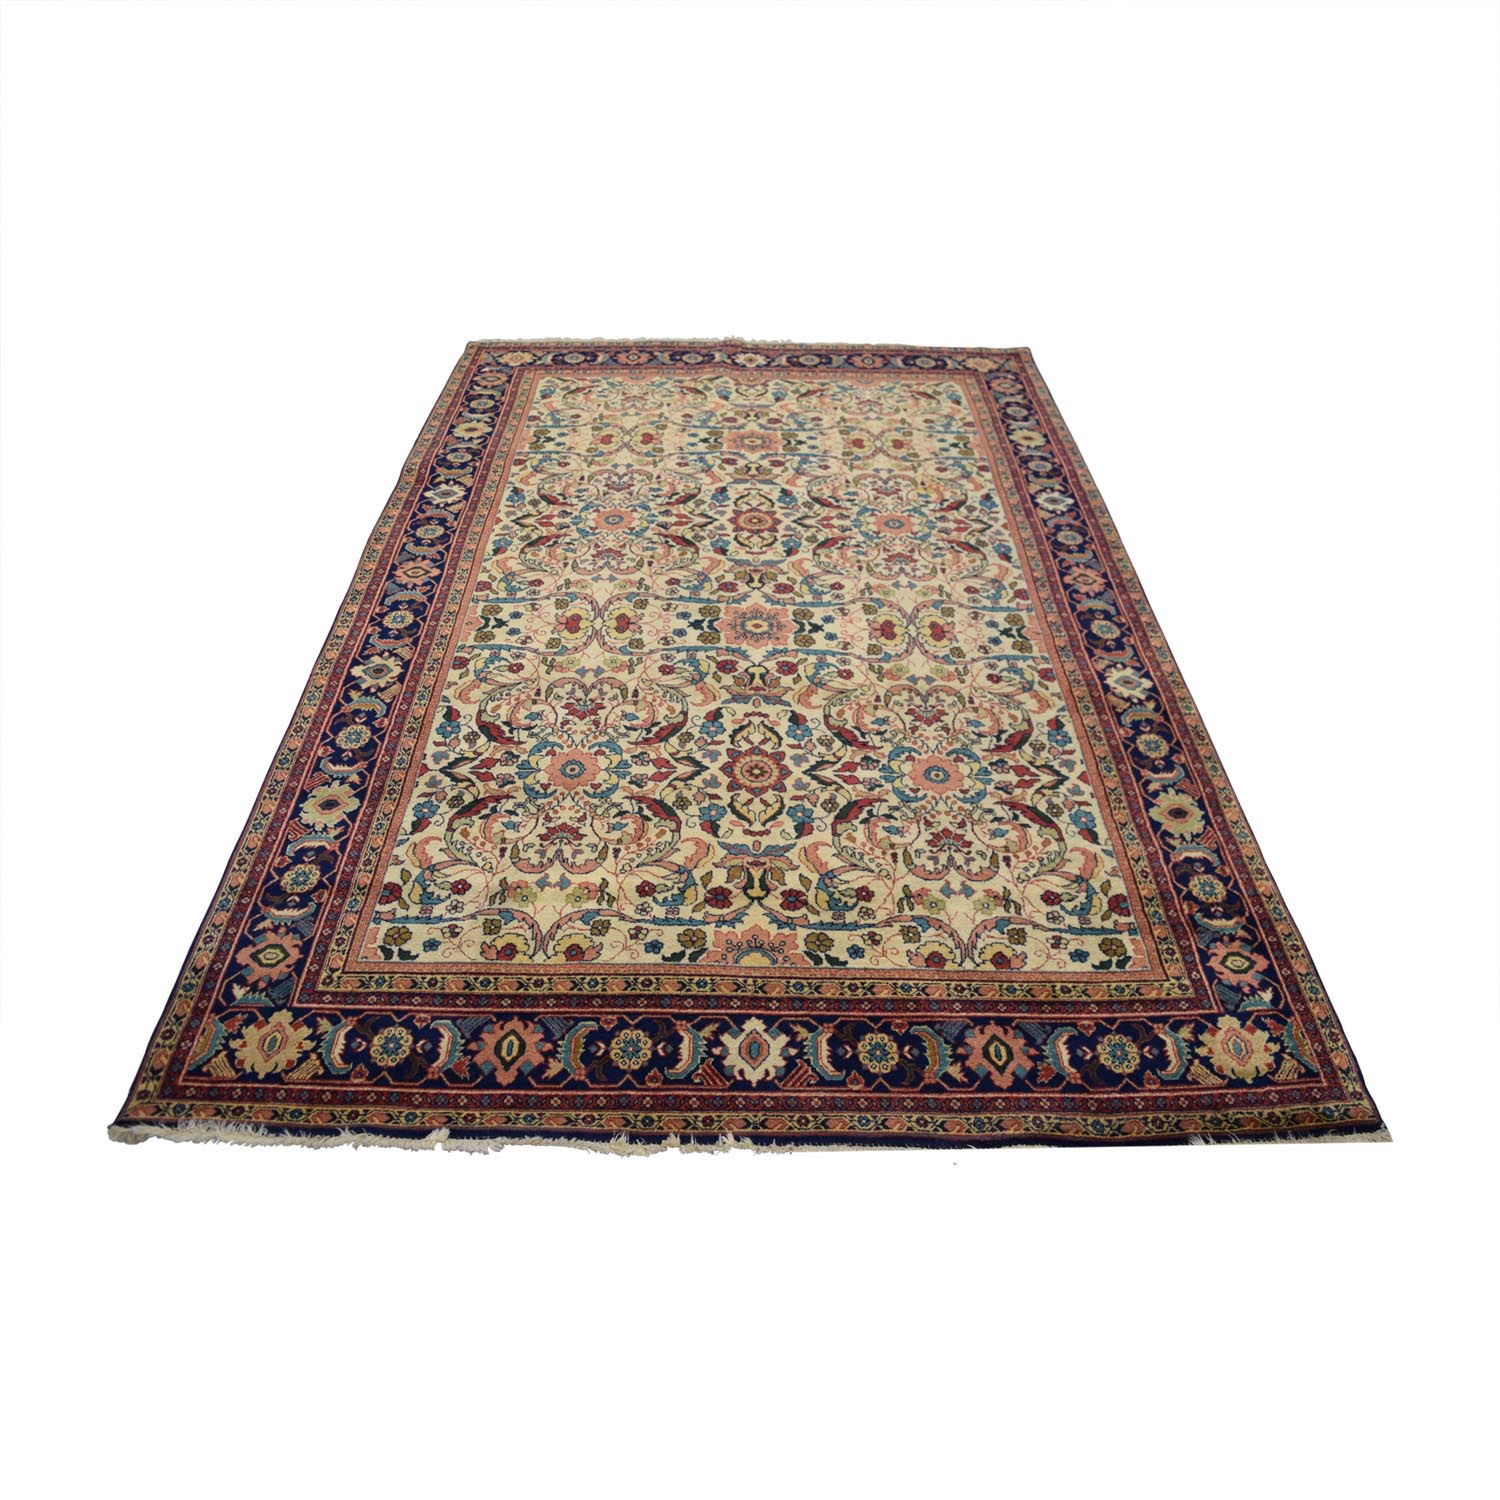 Antique Multi-Colored Floral Wool Rug coupon